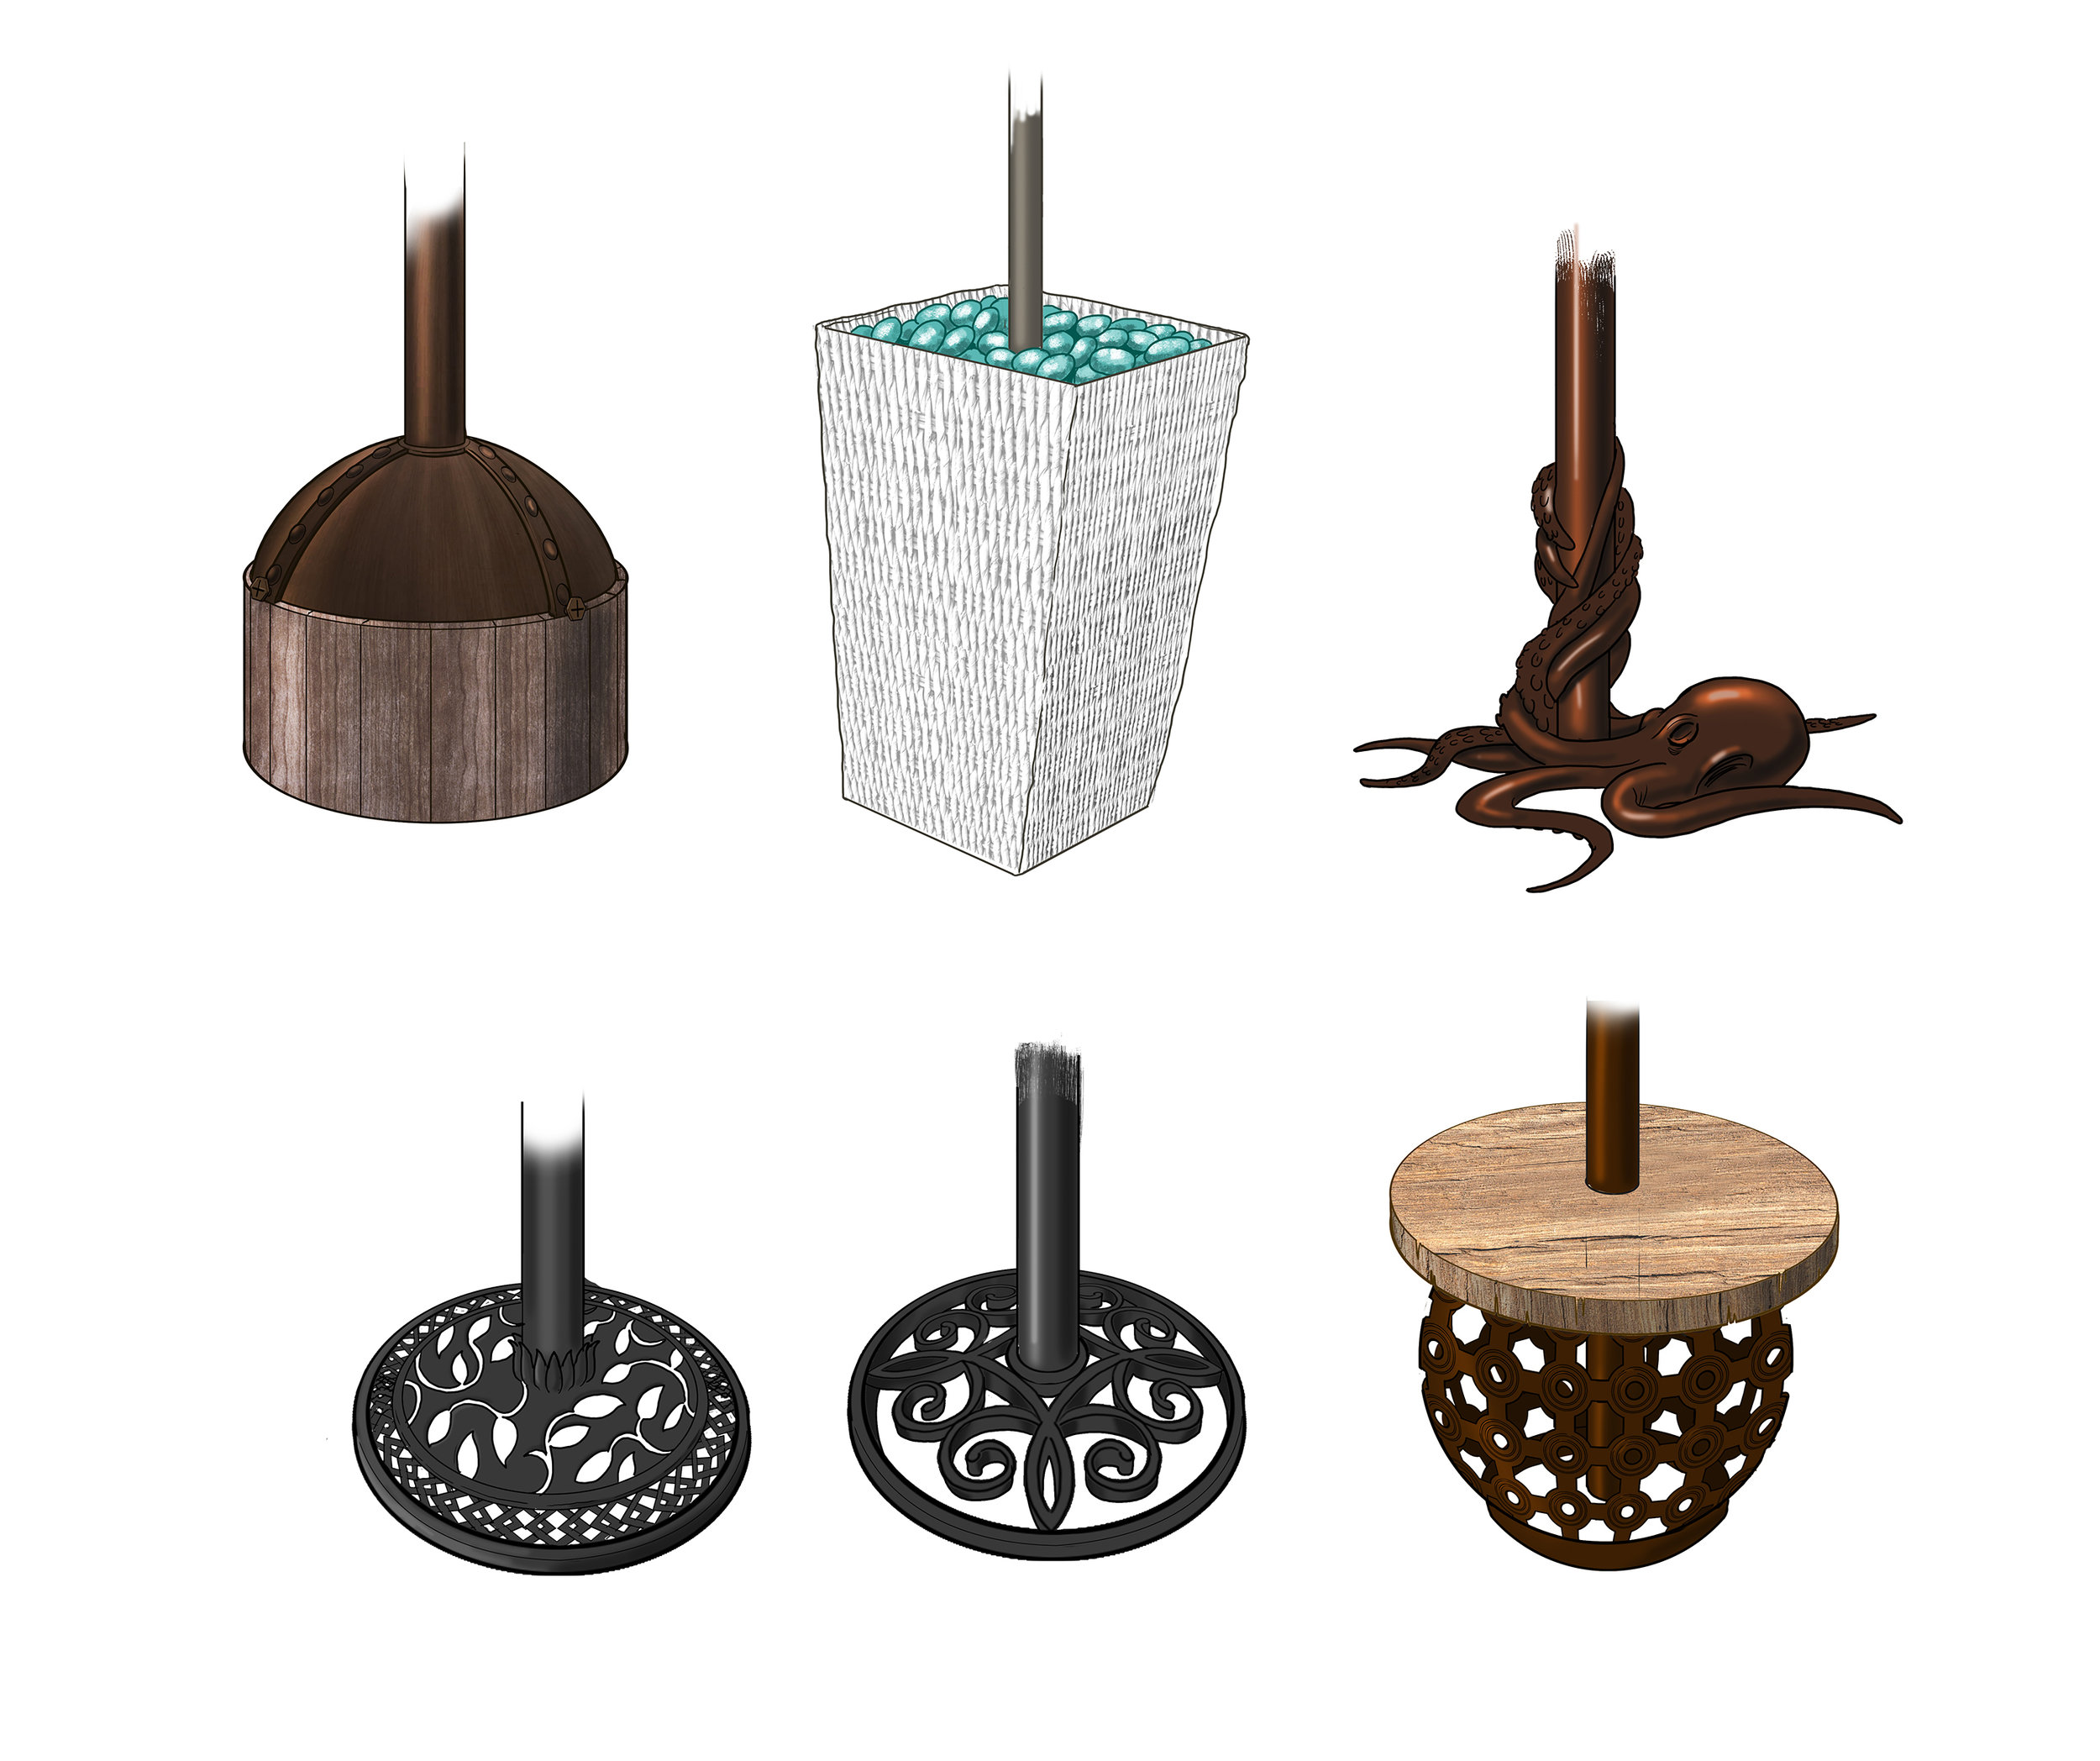 Decorative Torch Stands